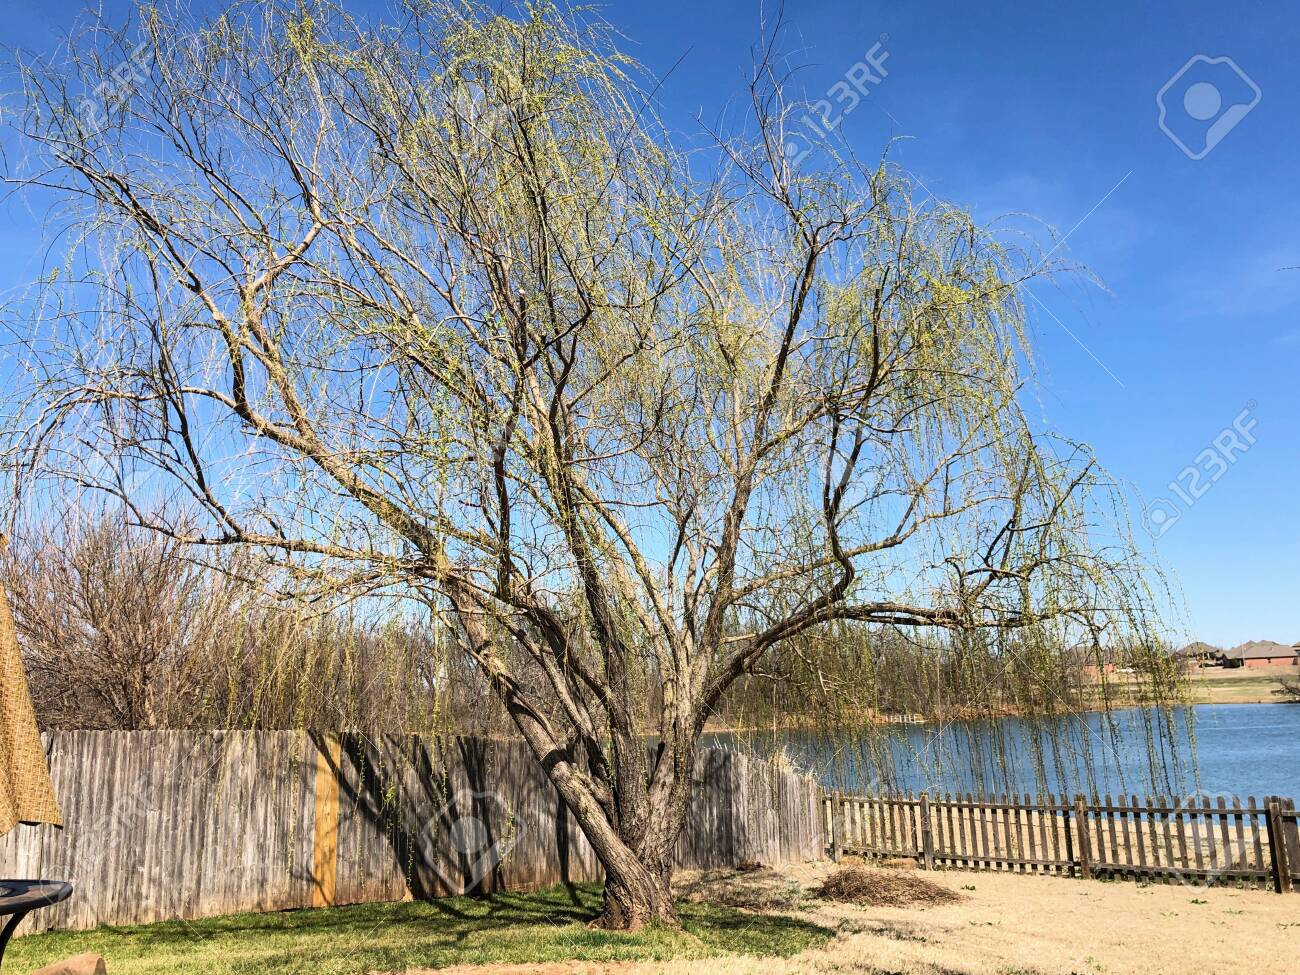 Willow Tree By A Wooden Fence And Pond In Winter Stock Photo Picture And Royalty Free Image Image 134830635